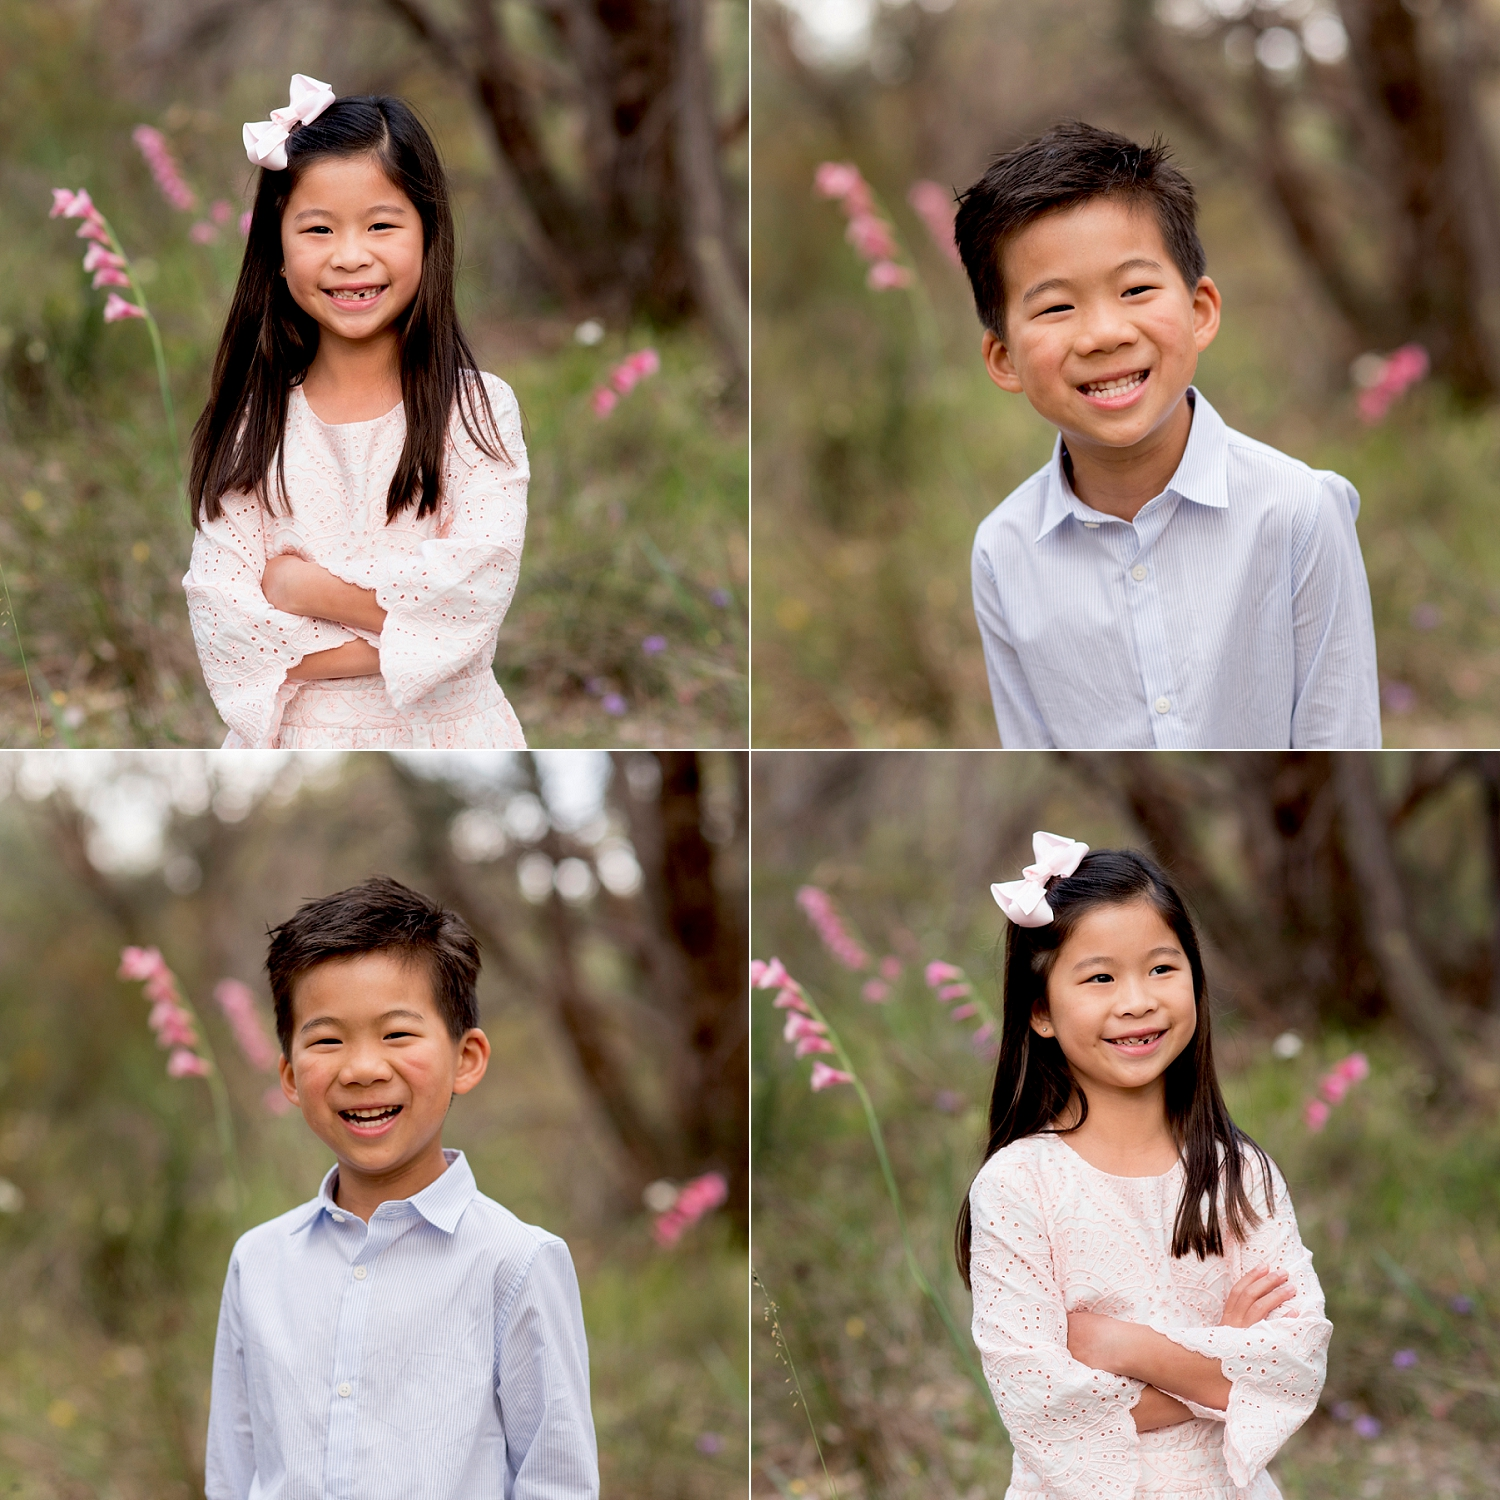 perth family photographer 03.jpg